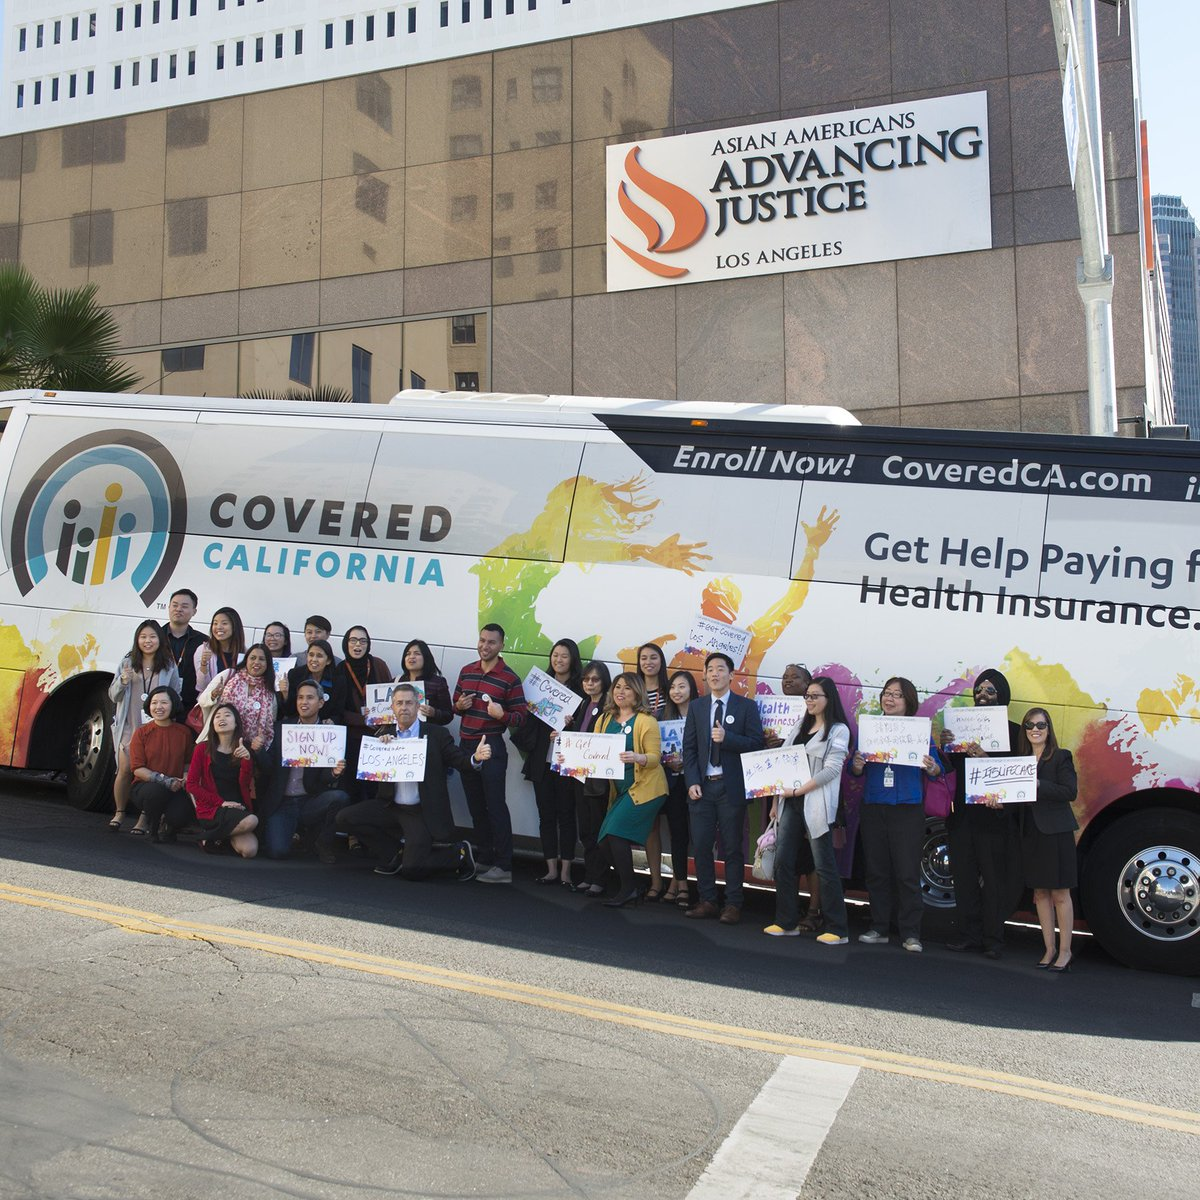 #CoveredCA kicked off its 8-stop bus tour at Asian American Advancing Justice in #LA. Thanks for your support, @AAAJ_LA!   Enroll by Dec. 15 for Jan. 1 coverage: https://t.co/4x3gfm9idL